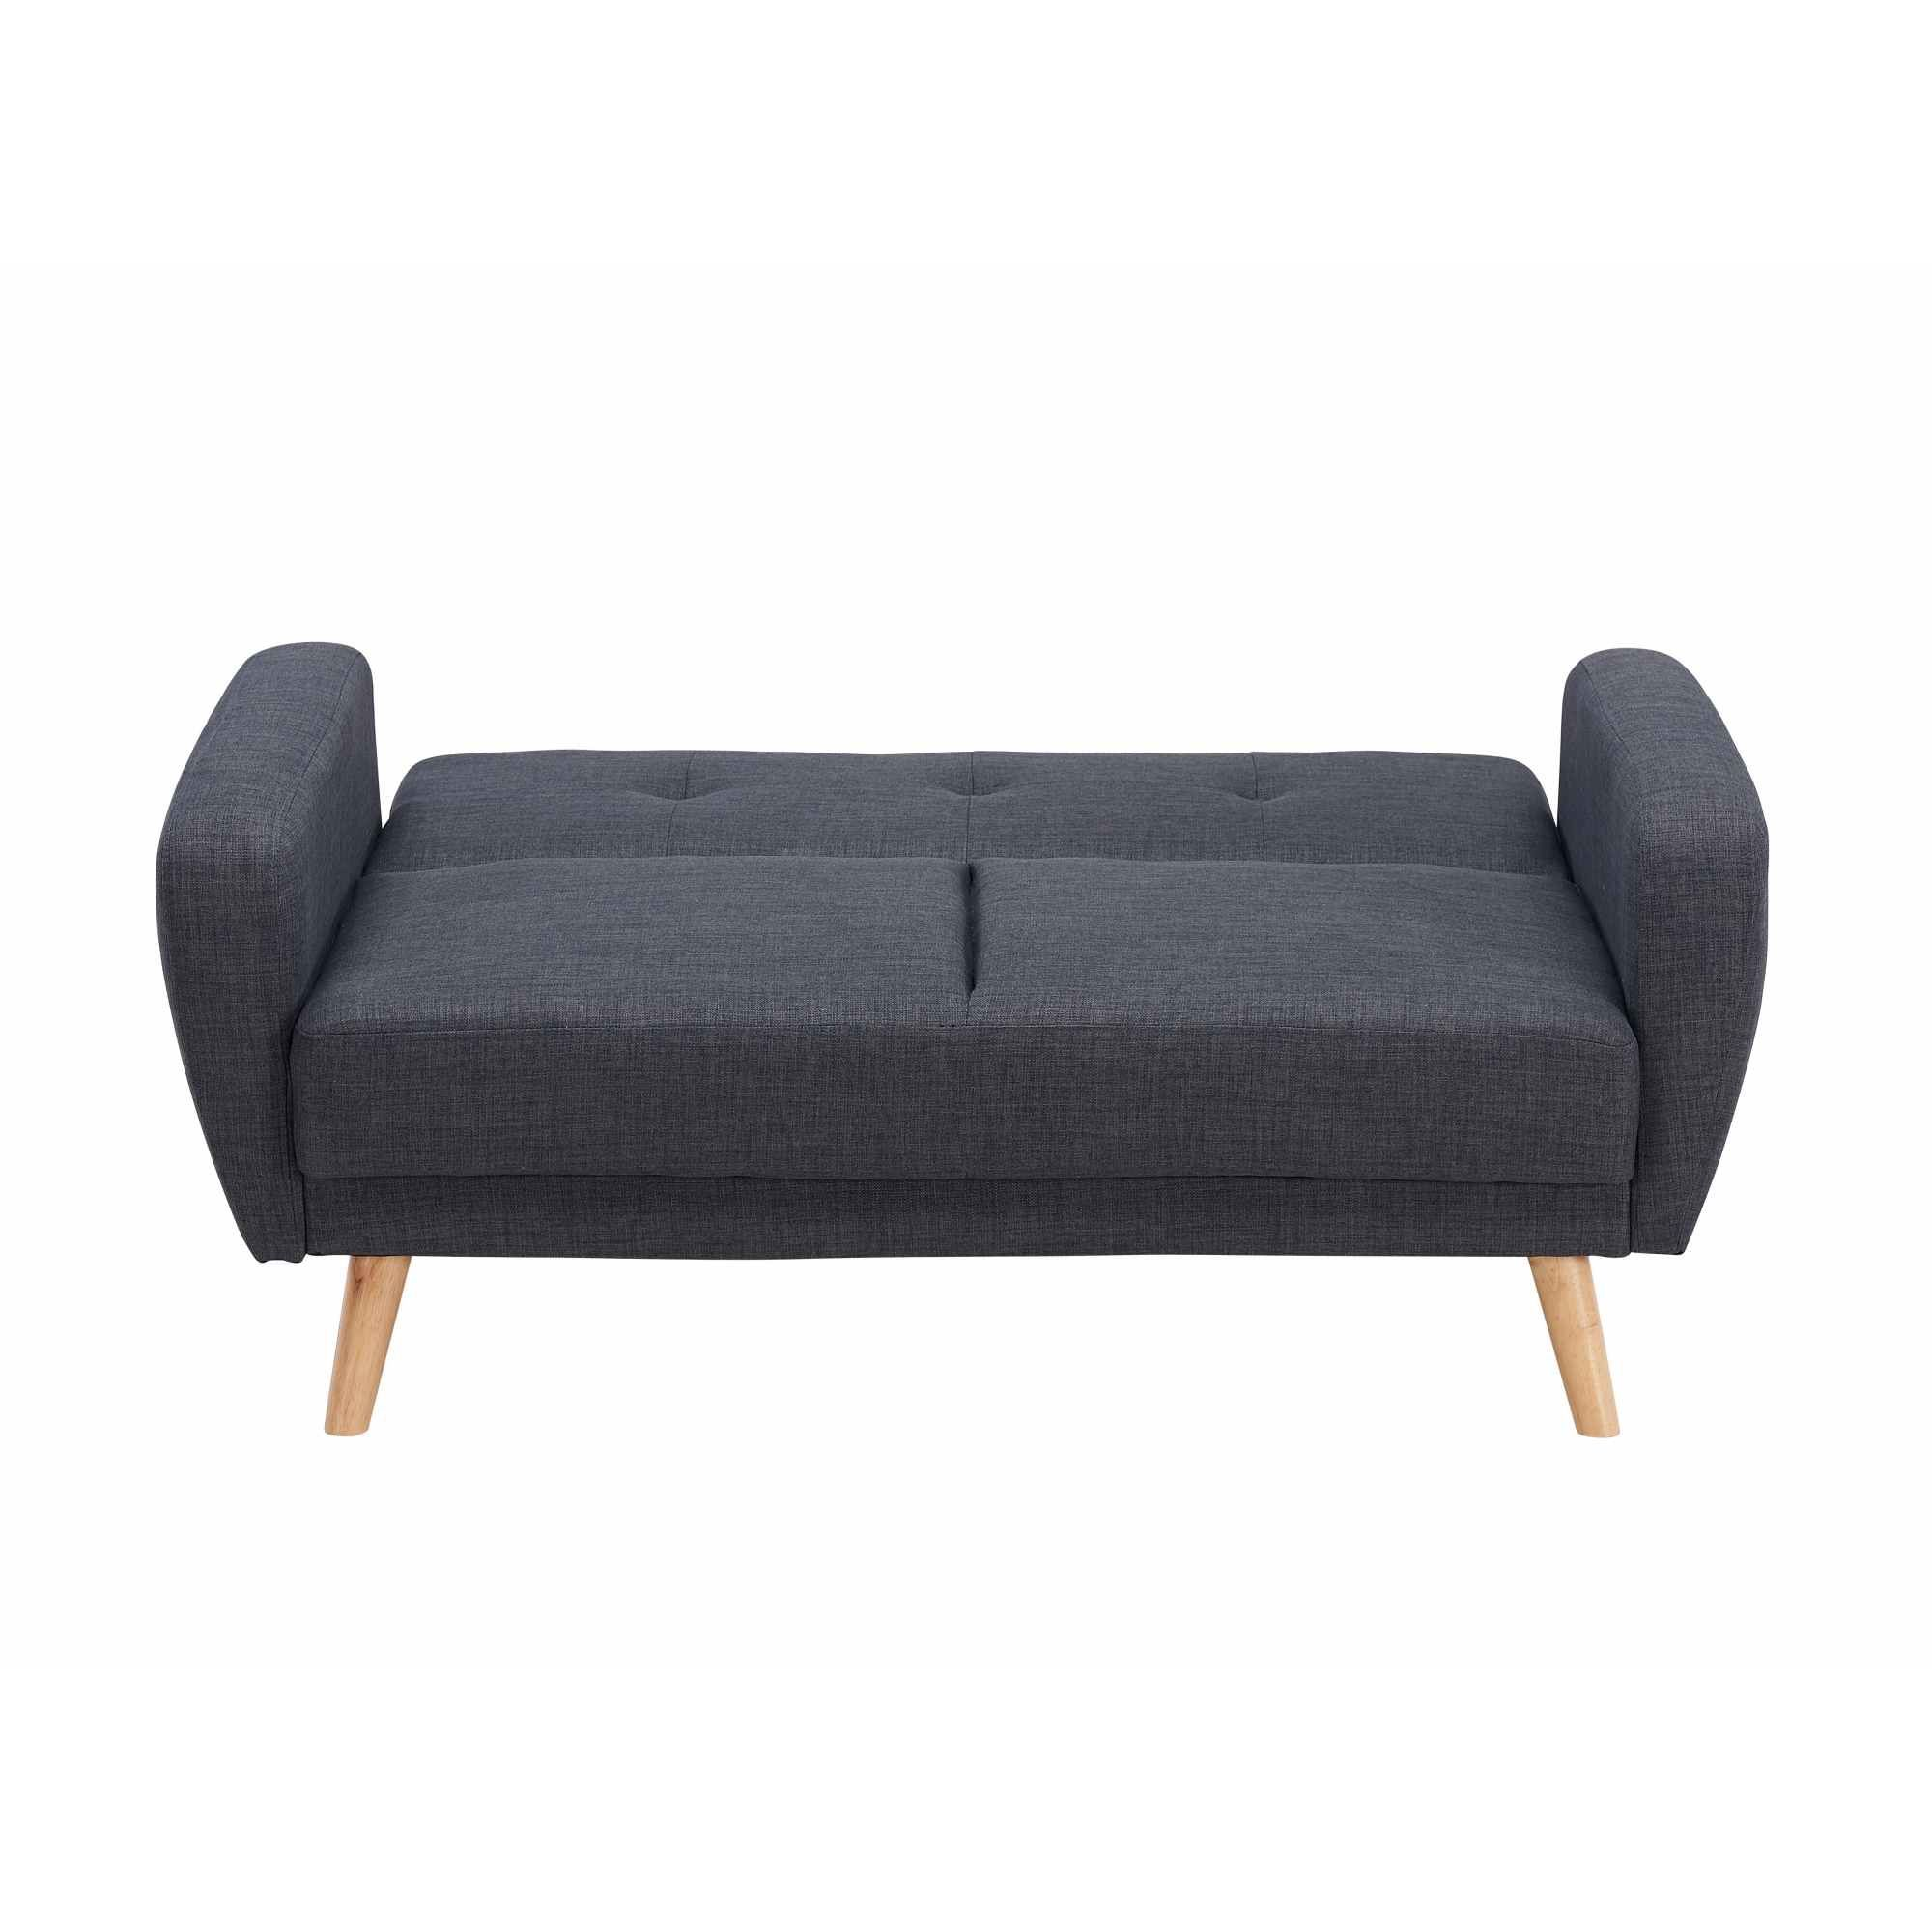 Deco in paris canape 2 places convertible scandinave for Canape 2 places gris